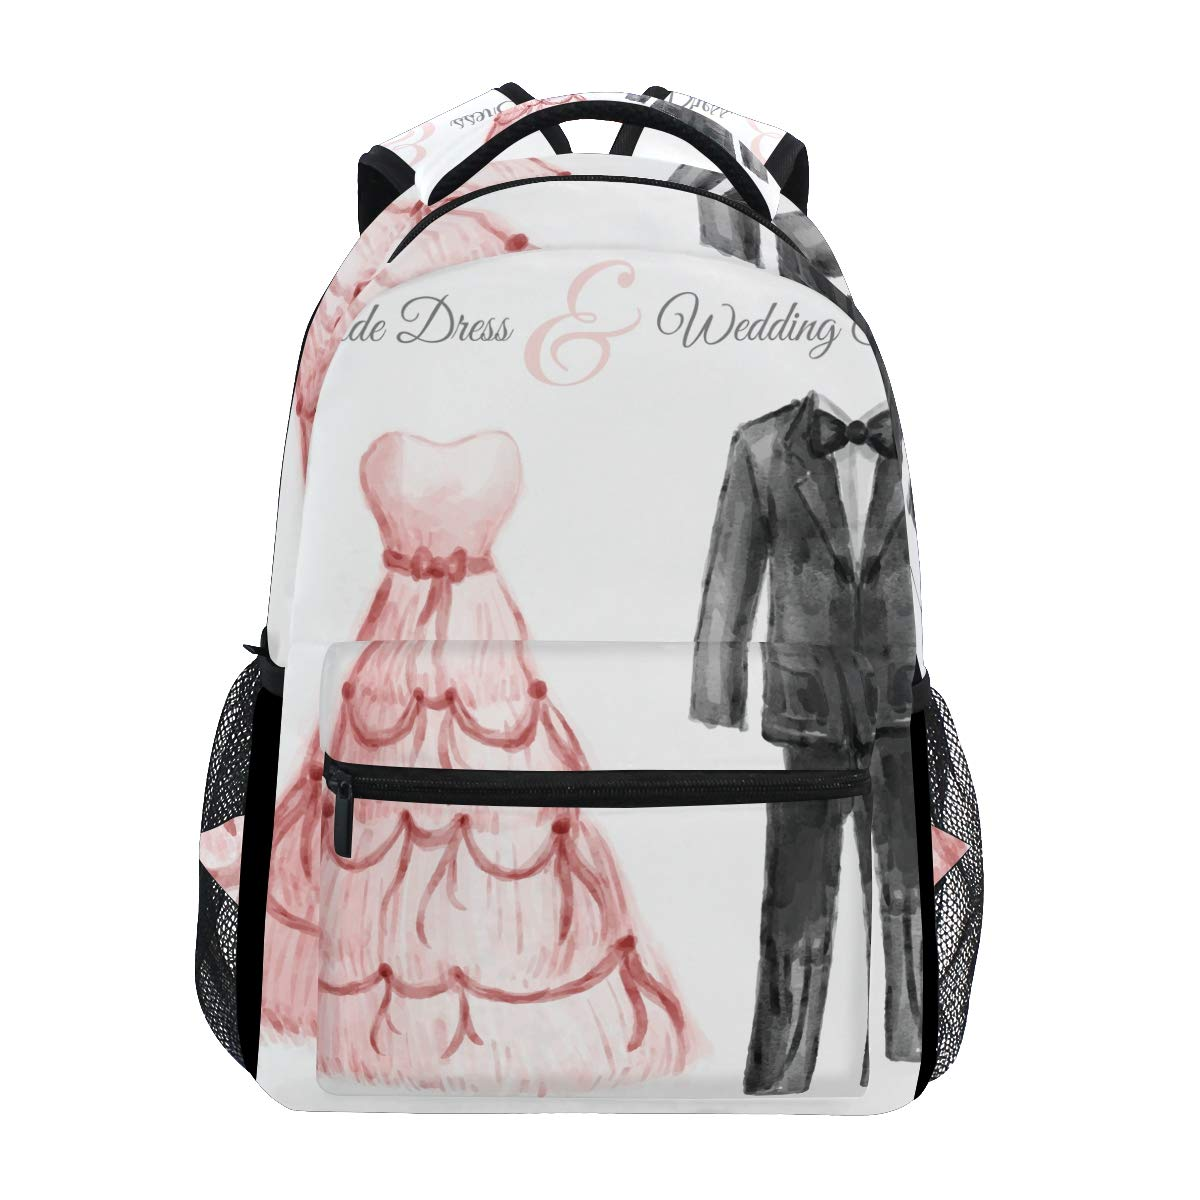 Backpack Travel Wedding Dress School Bookbags Shoulder Laptop Daypack College Bag for Womens Mens Boys Girls